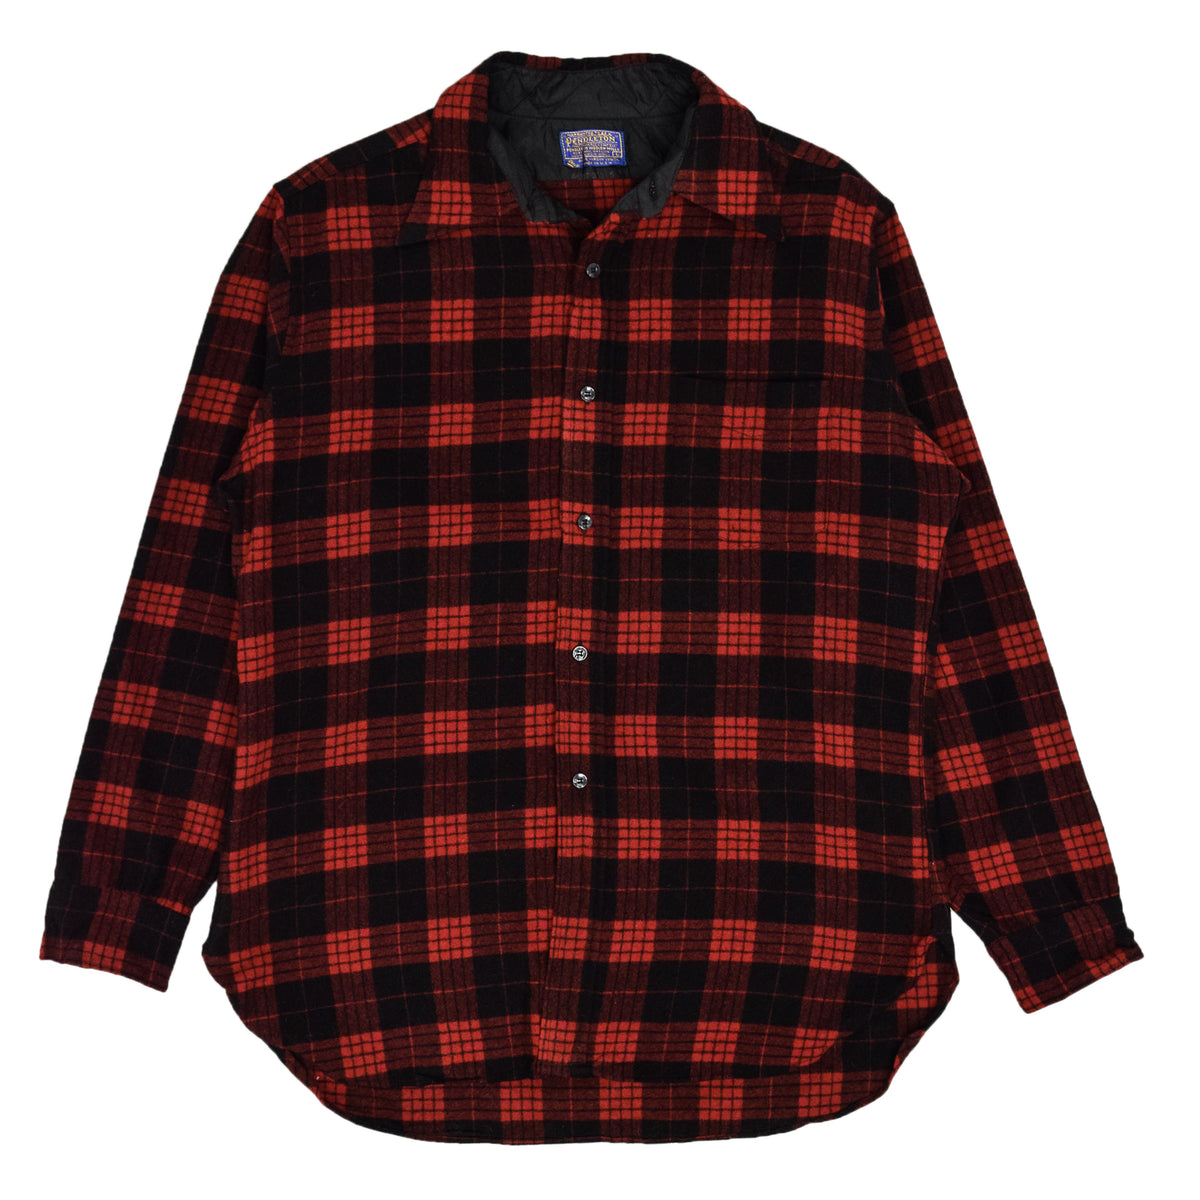 Vintage Pendleton Plaid Long Sleeve Made In USA Pure Virgin Wool Check Shirt L FRONT